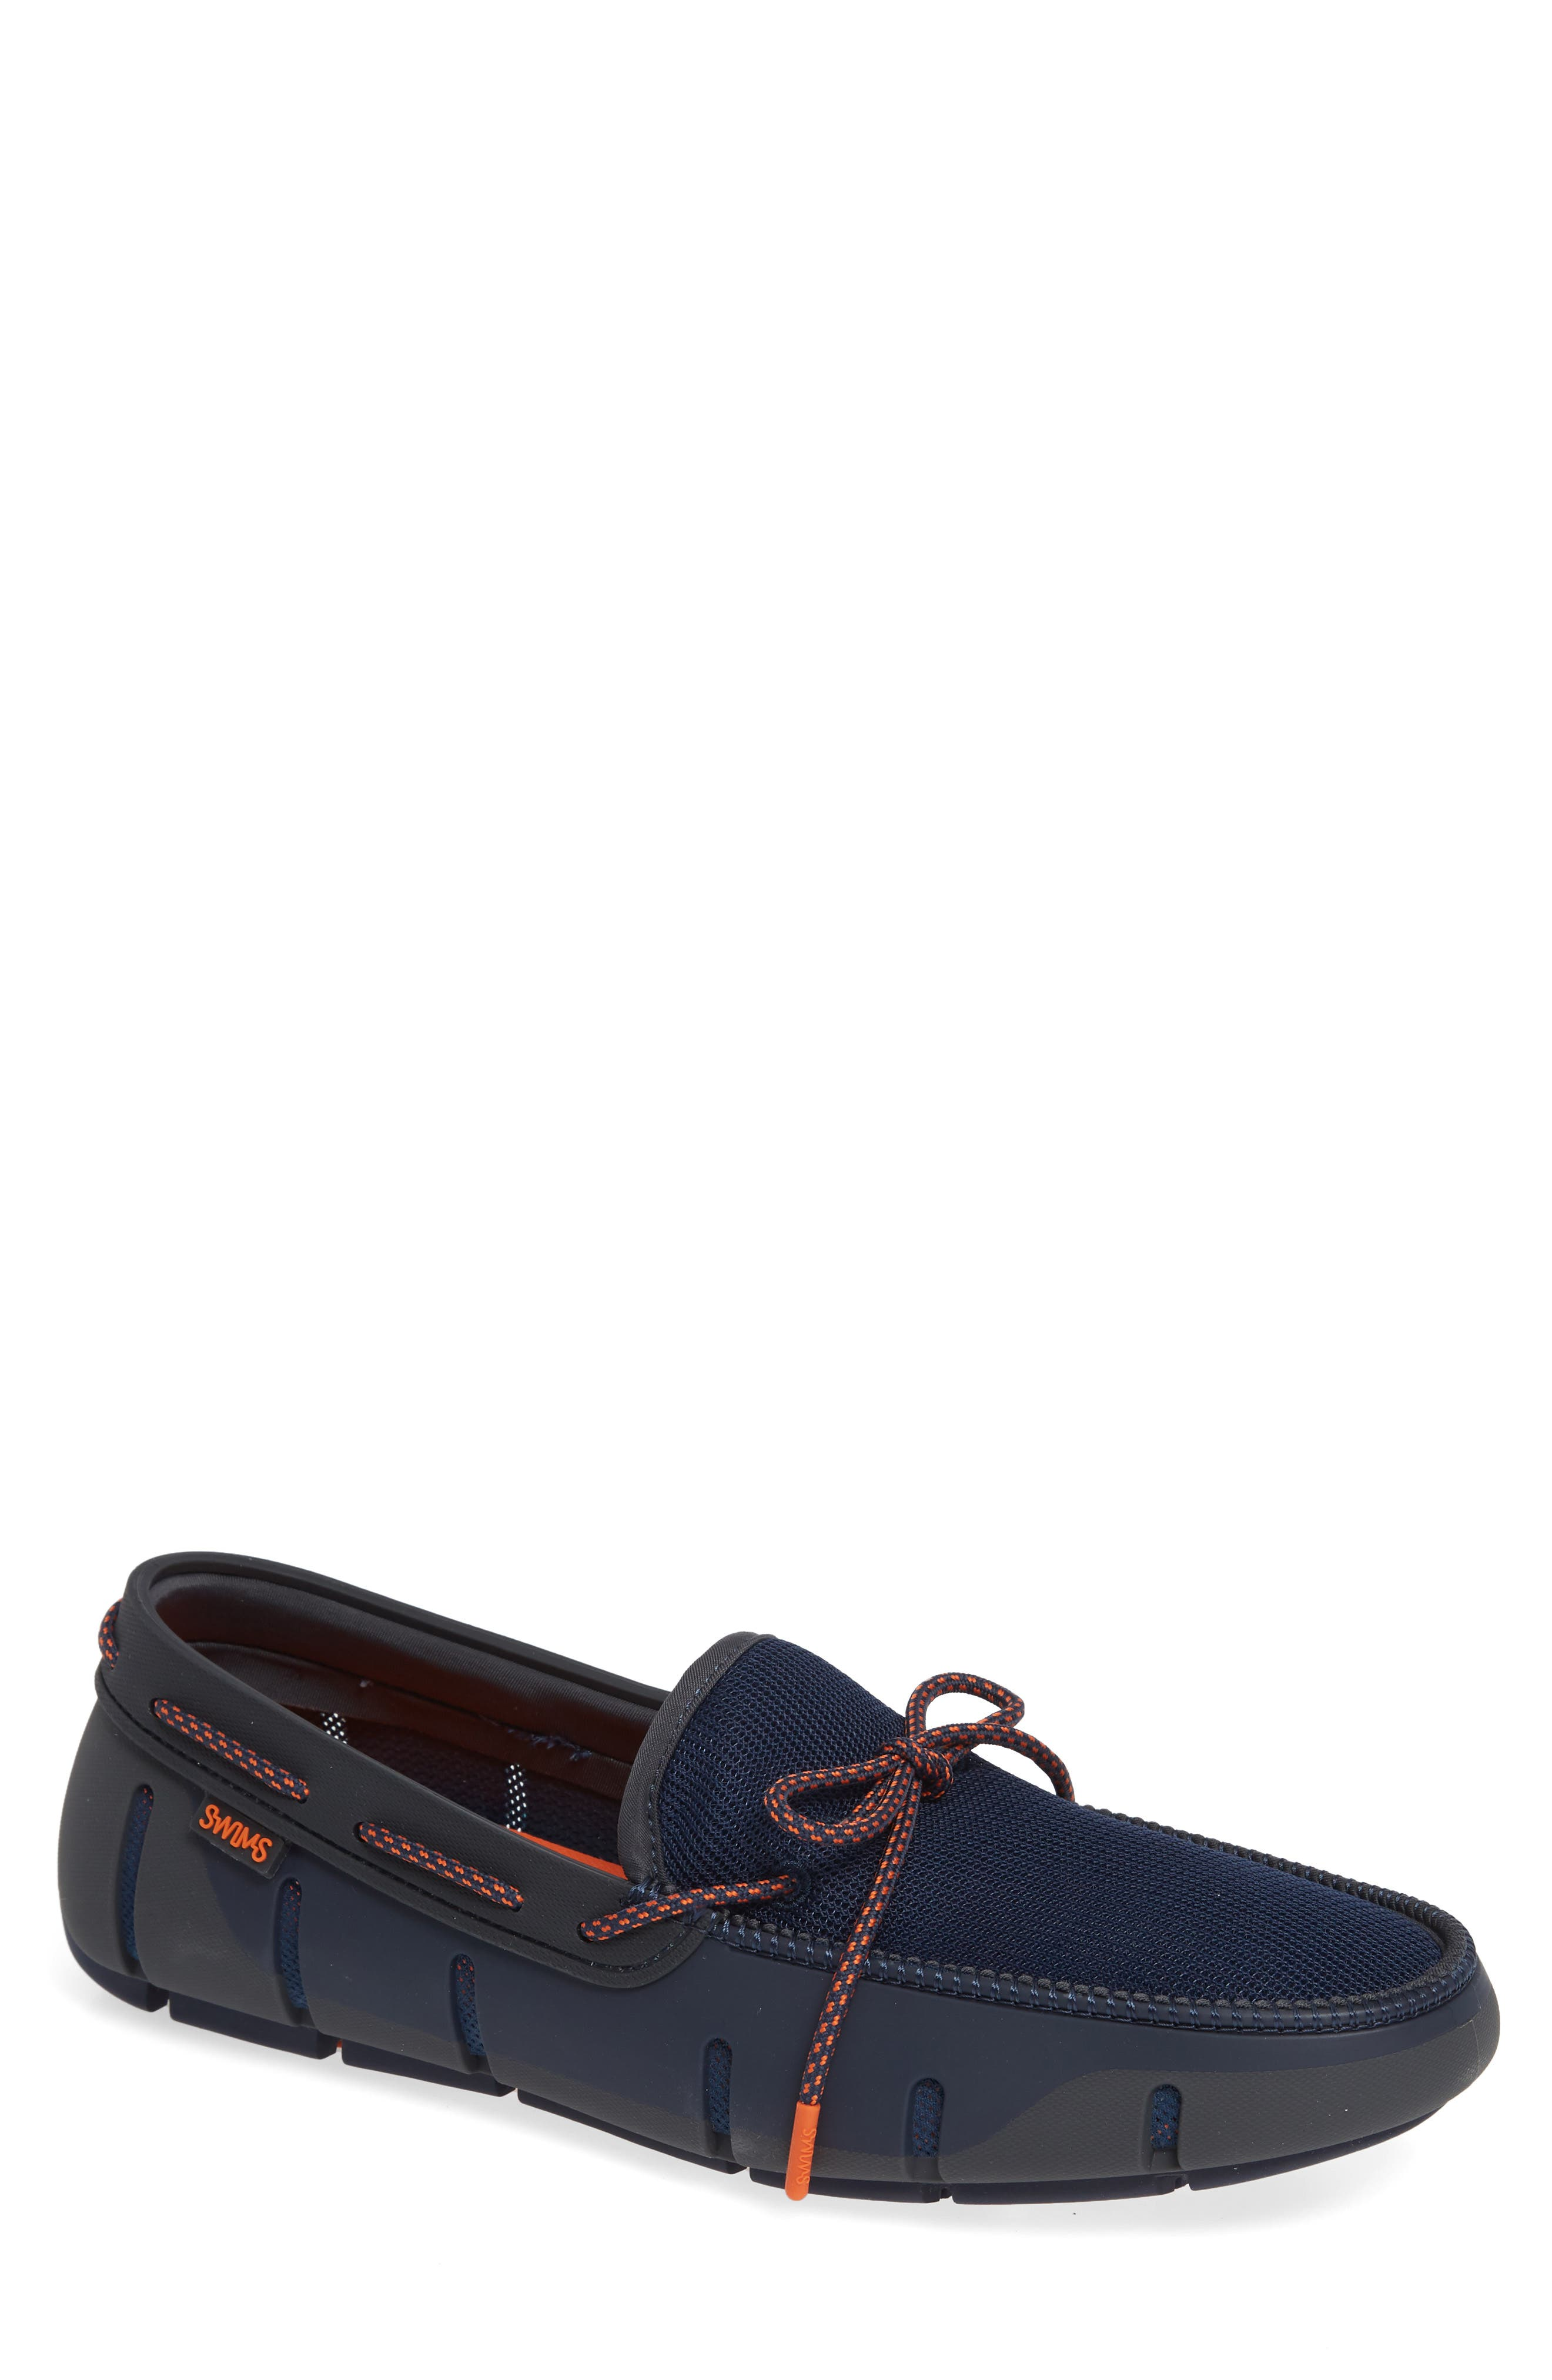 Stride Lace Loafer,                             Main thumbnail 1, color,                             Navy/ Dark Gray